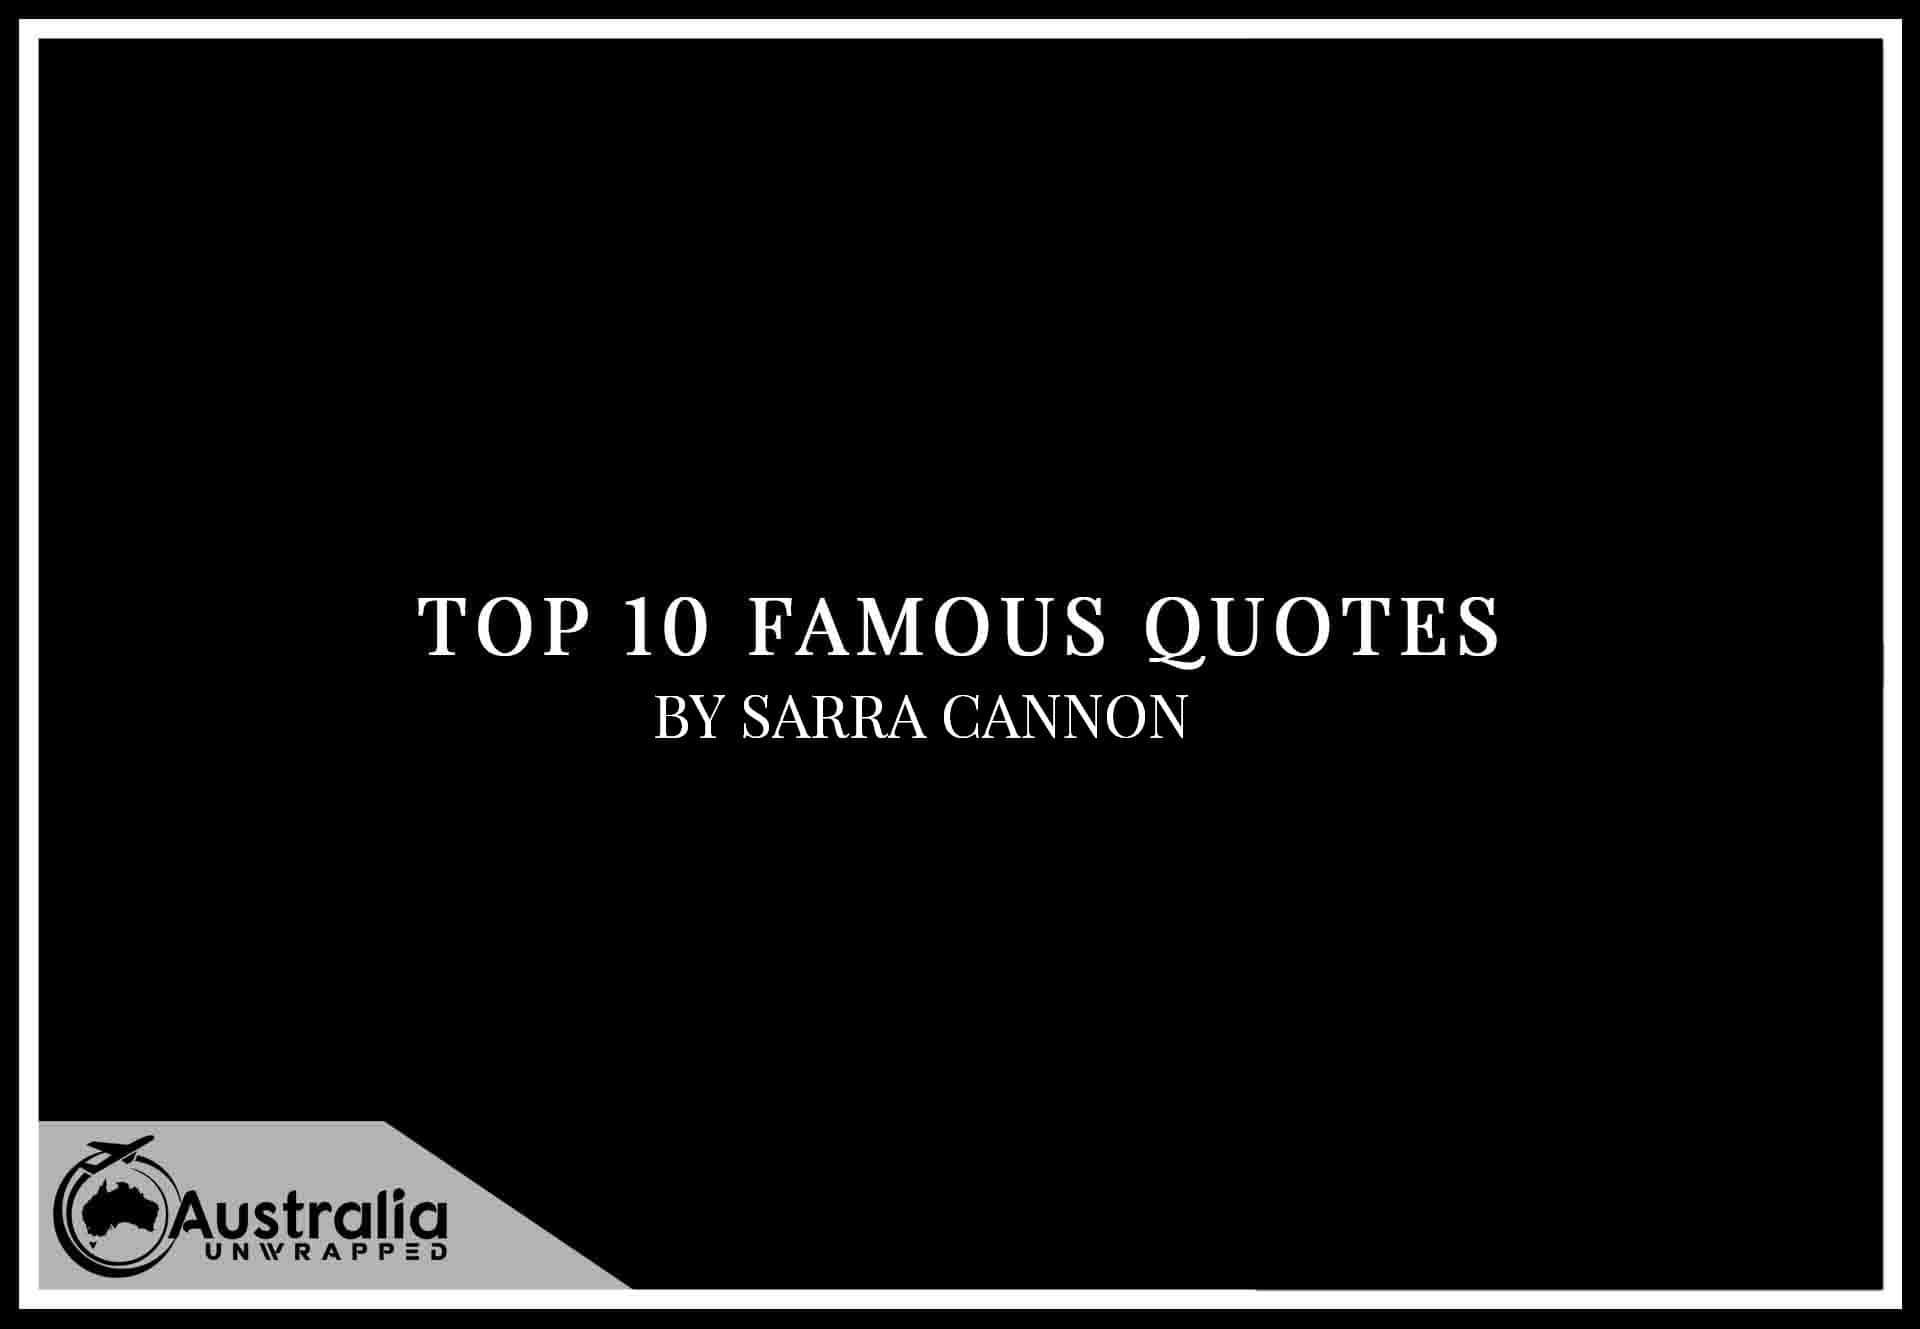 Top 10 Famous Quotes by Author Sarra Cannon